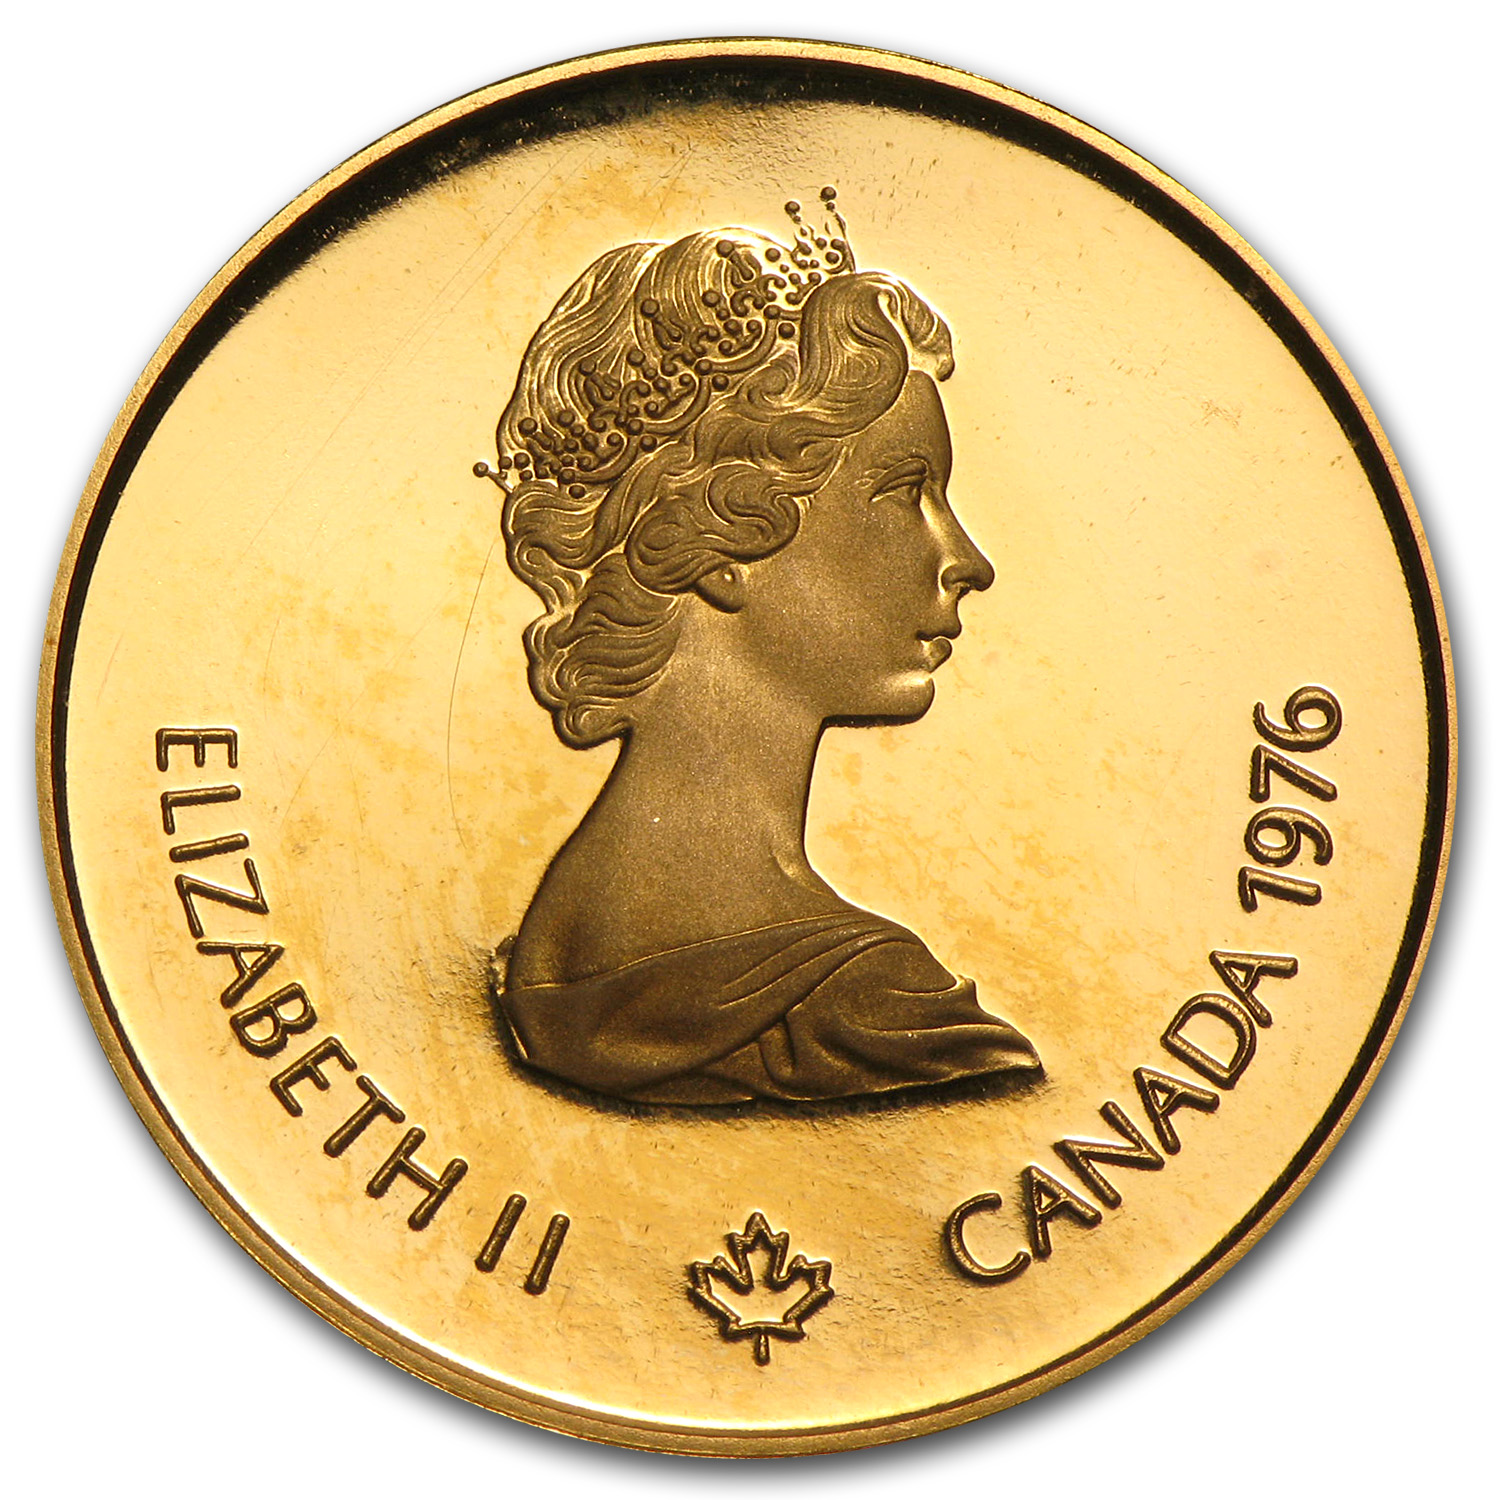 1976 1/2 oz Gold Canadian $100 Proof - Olympic